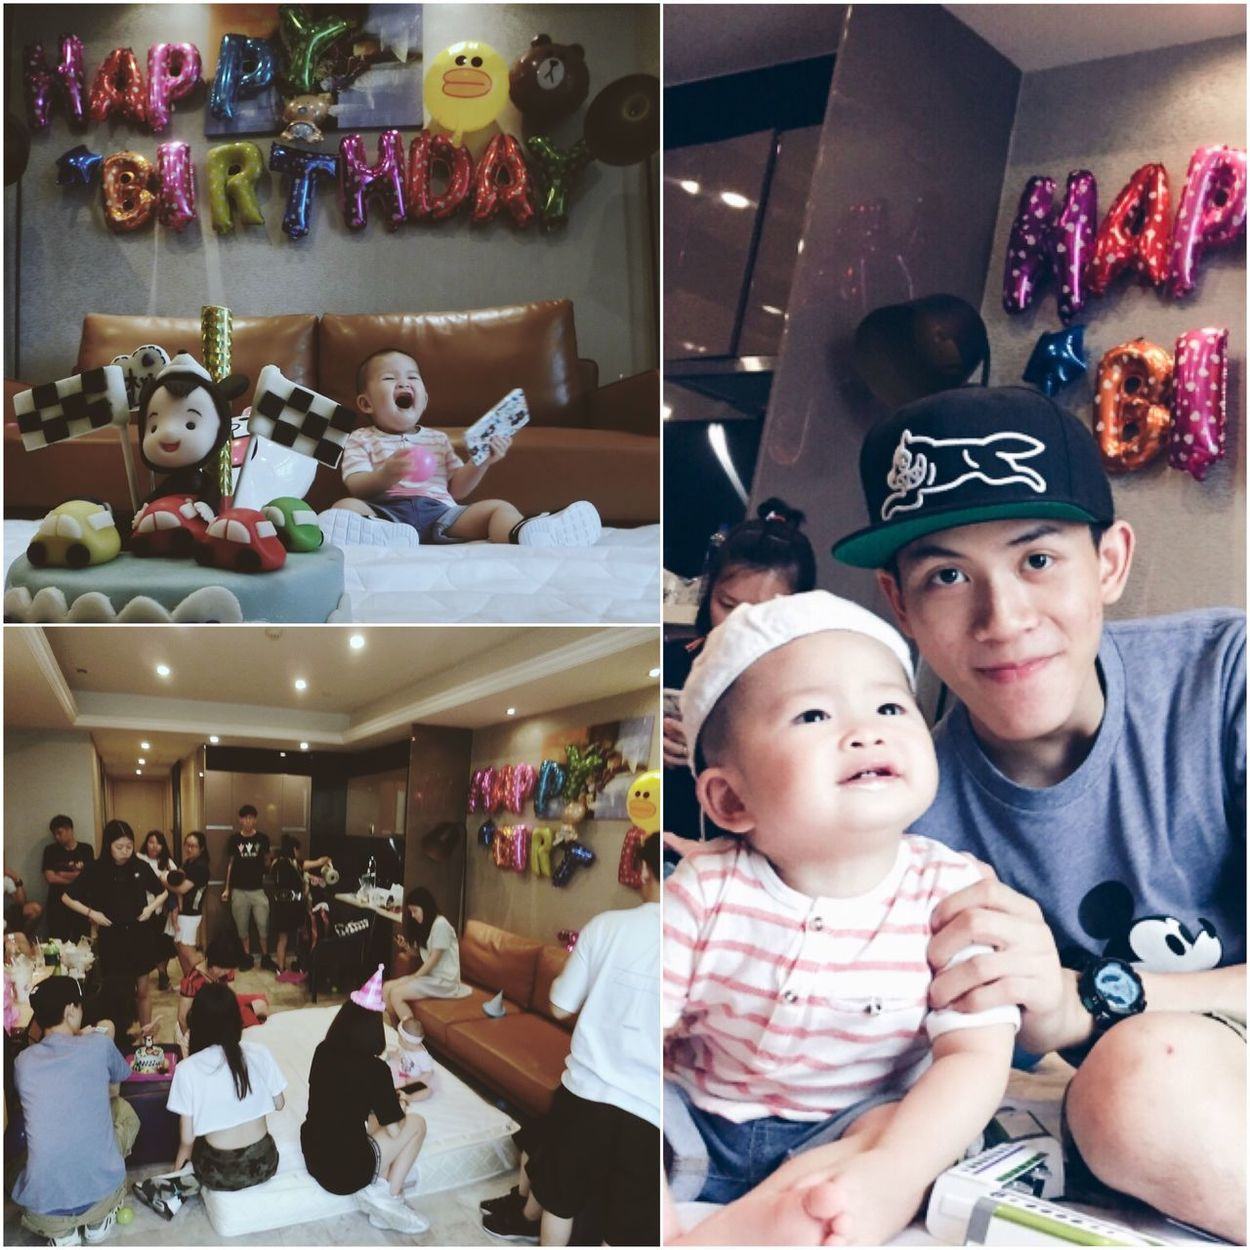 Super Baby Birthday Party Candle Always Smile Moments Of My Life @ 私の人生の瞬間。 Portrait Taking Photos Enjoying Life ♥ EyeEm Best Shots Discover Your City Children Photography Have Fun Friendship ThatsMe